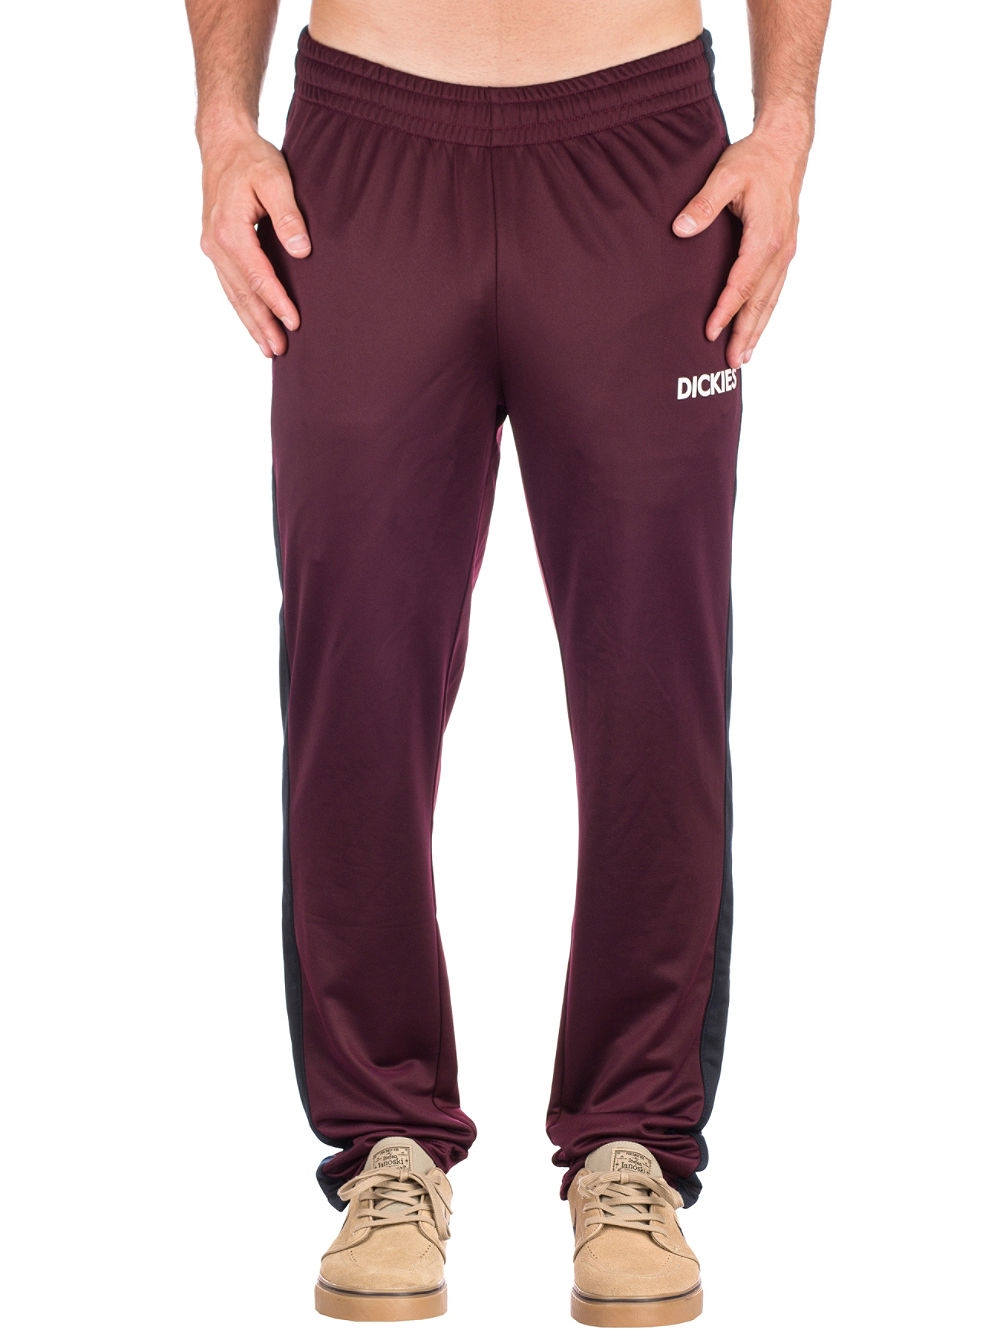 Reston Jogging Pants